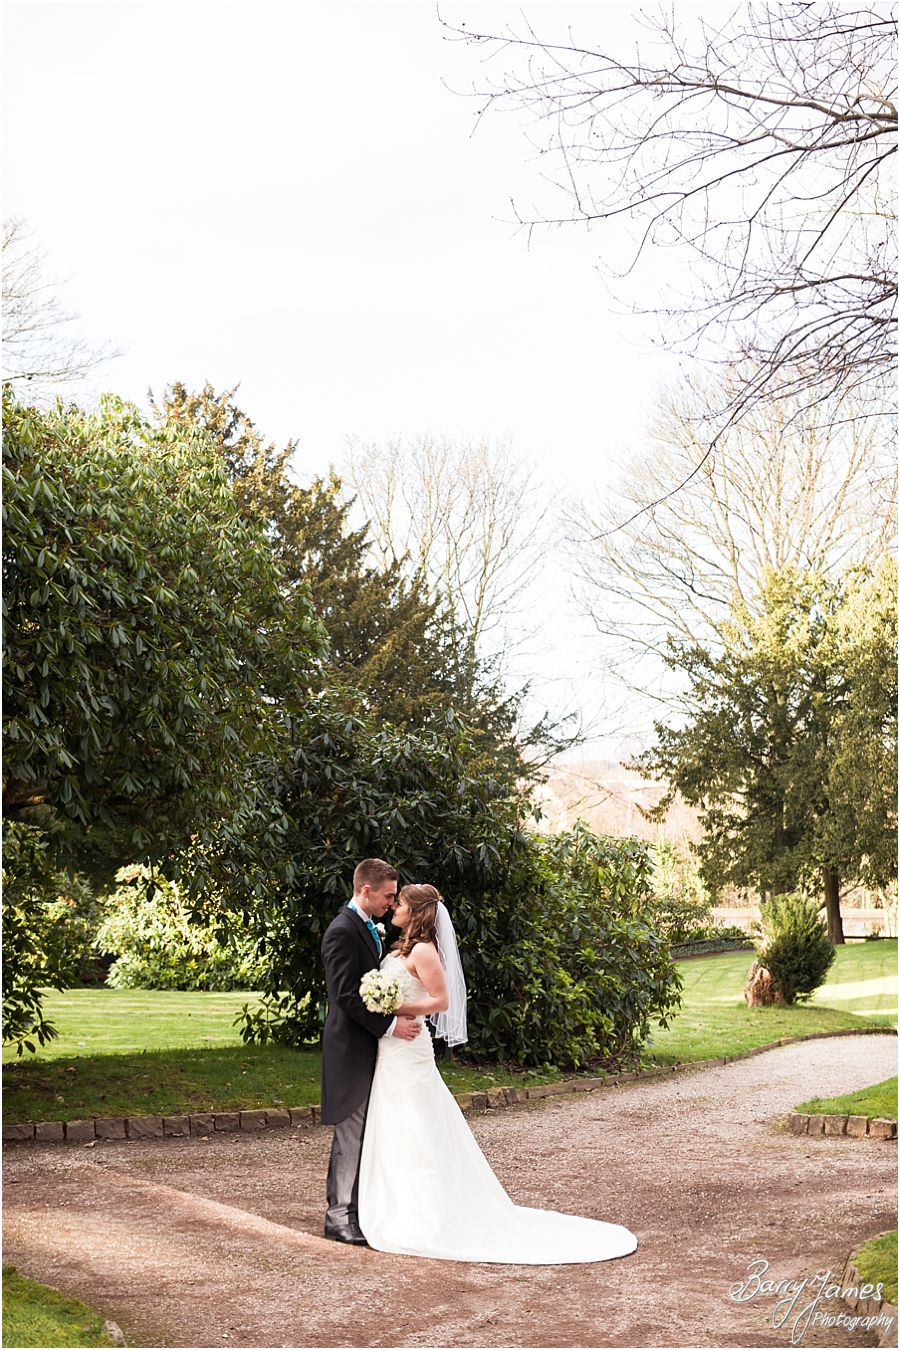 Elegant relaxed portraits of Bride and Groom around stunning grounds at Hawkesyard Hall in Rugeley by Professional Master Wedding Photographer Barry James